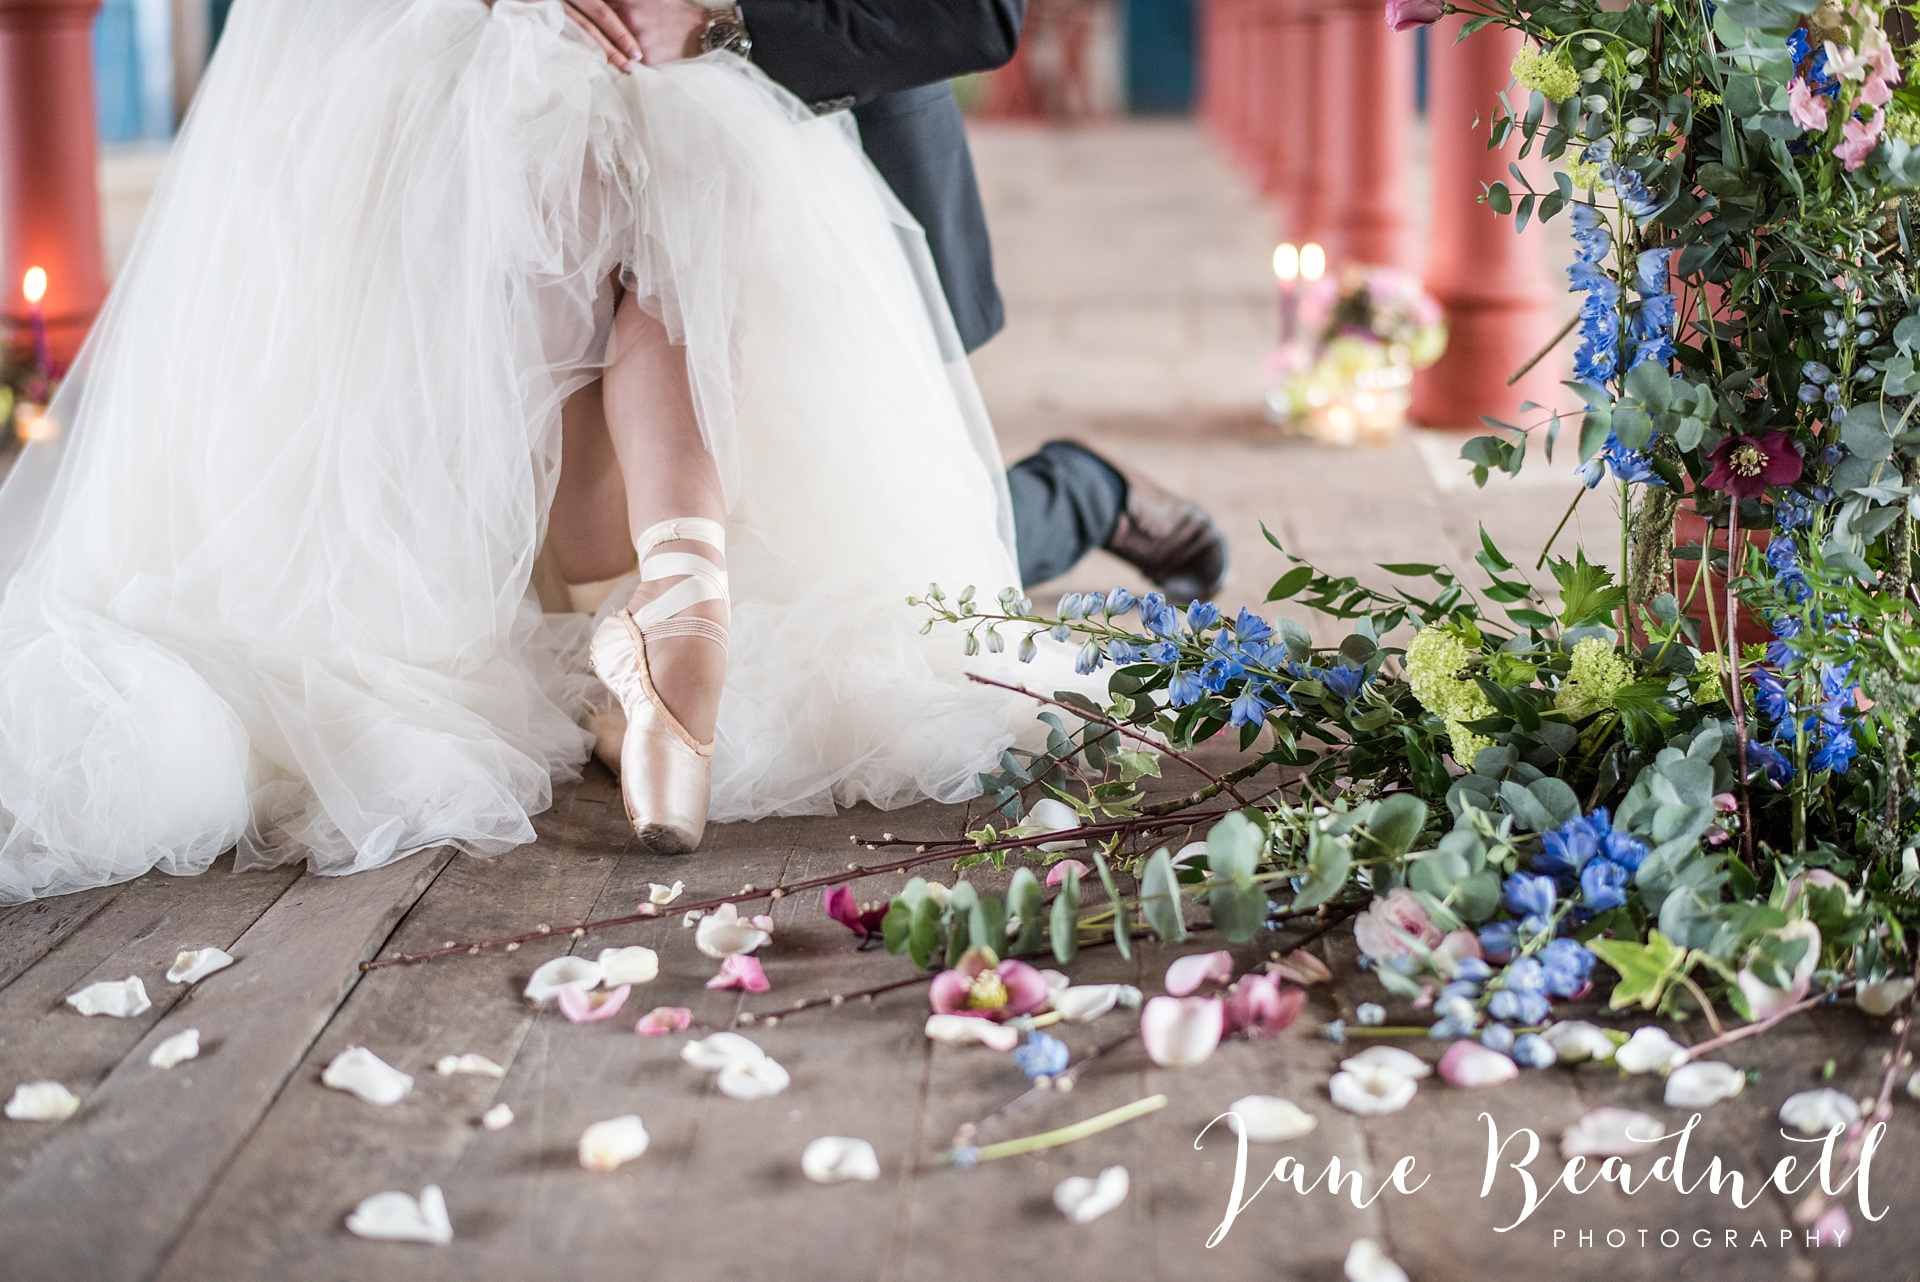 Ballet themed styled wedding shoot at Dalton Mills by Jane Beadnell Photography-0_0071